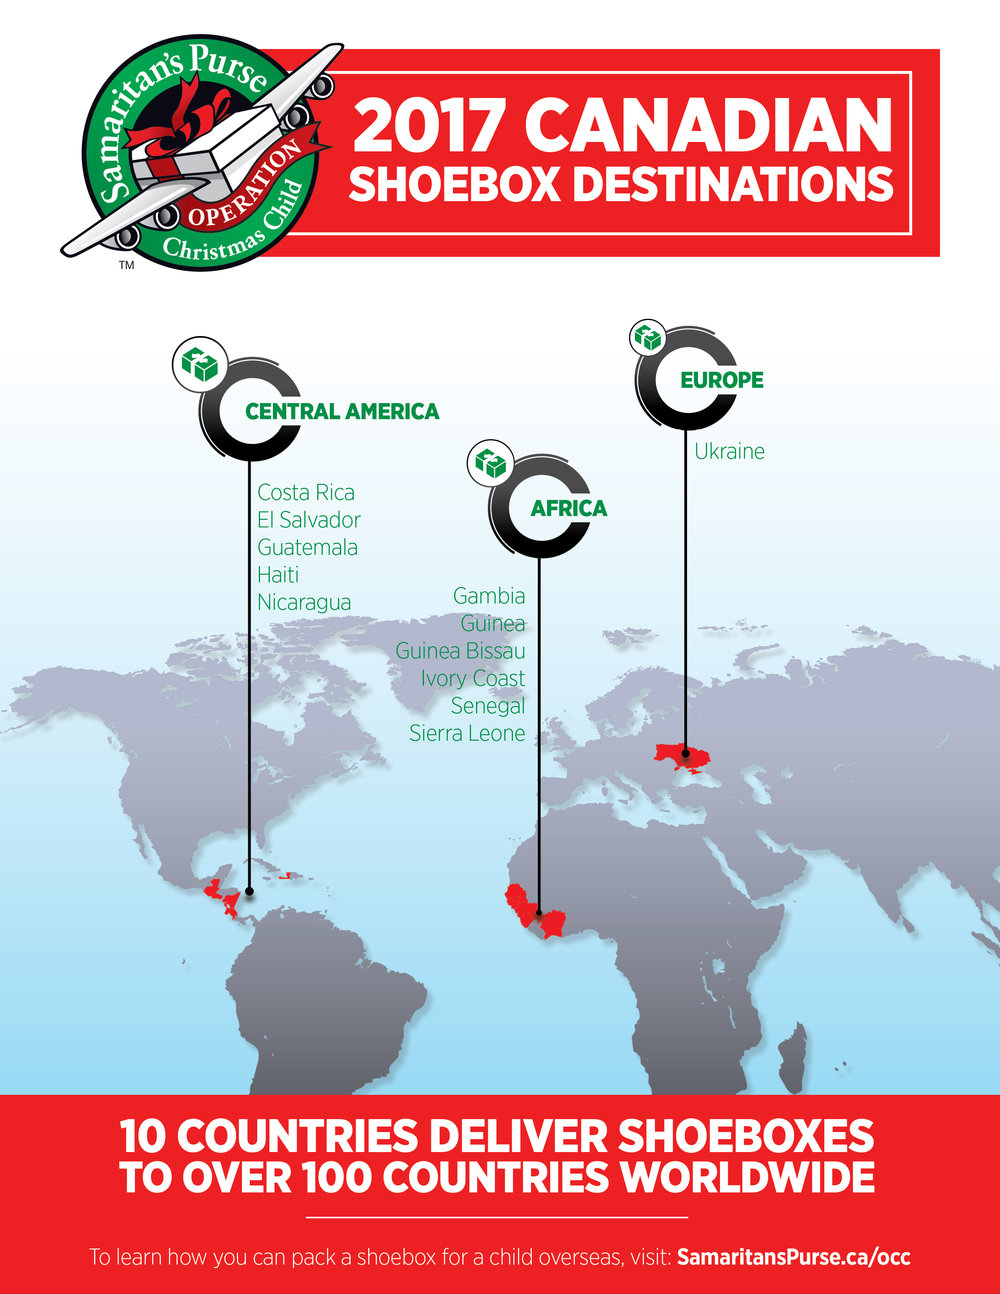 2017 Canadian Shoebox Destinations